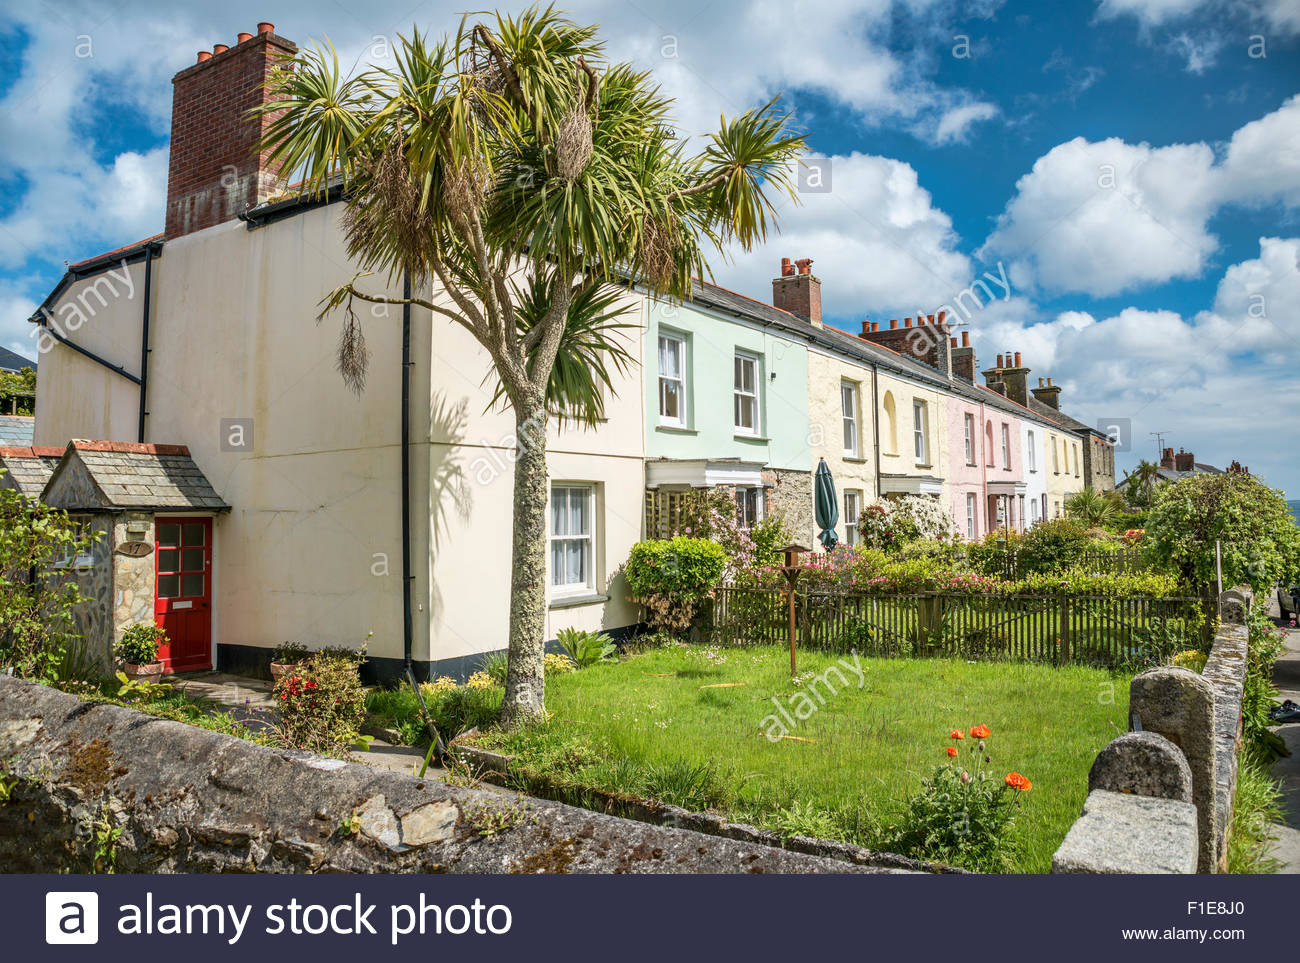 Cottages overlooking the inner harbour at Charlestown, Cornwall, England, UK - Stock Image